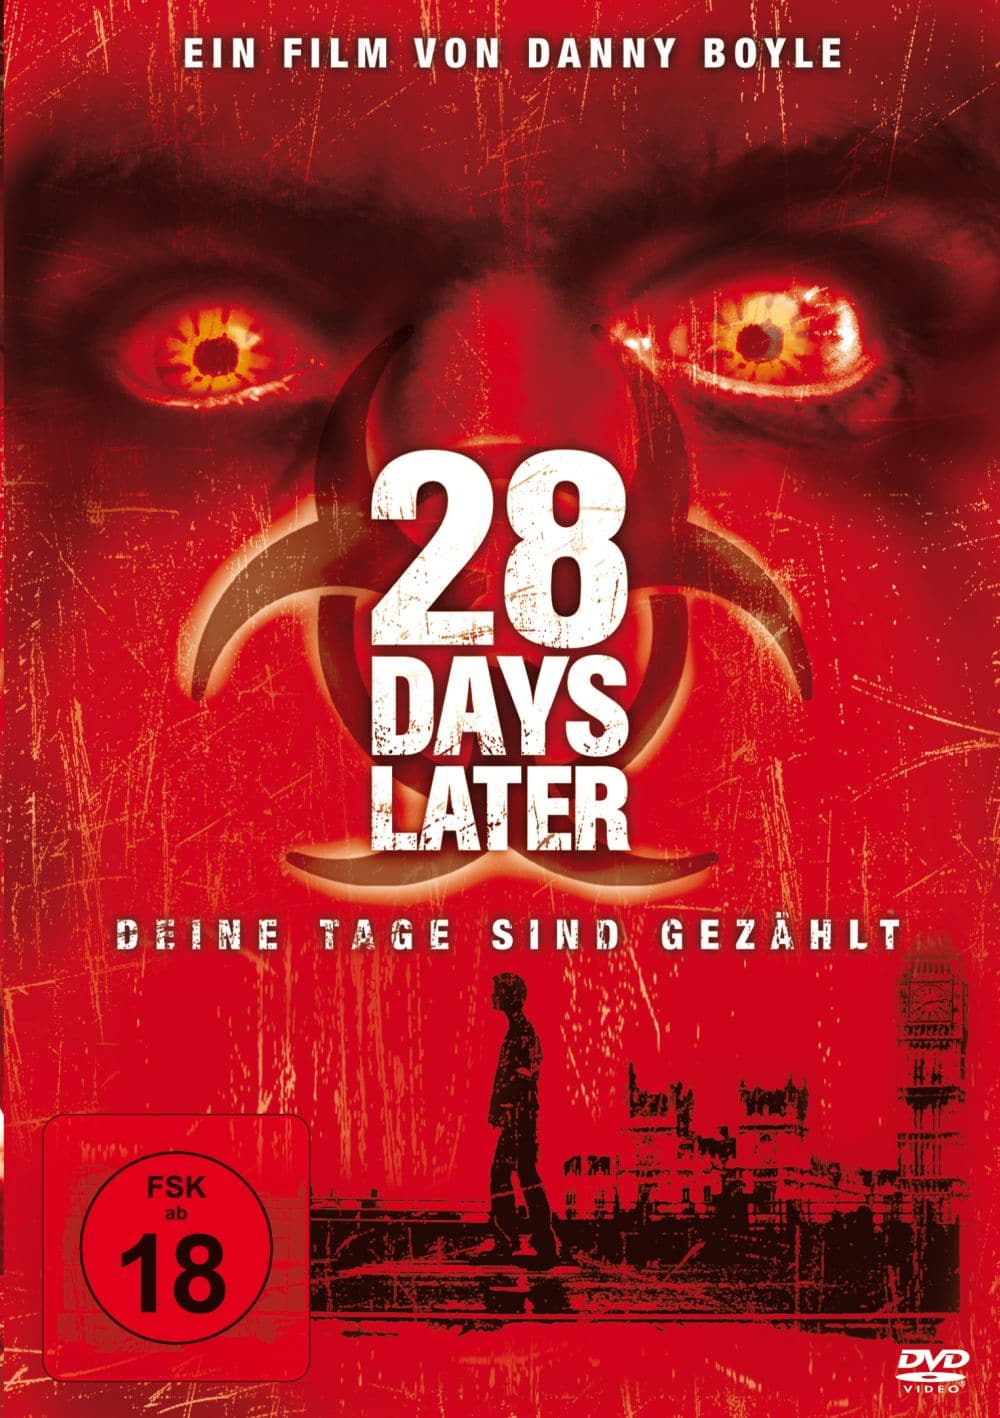 28 Days Later The Aftermath Steve Niles Graphic Novel Paperback